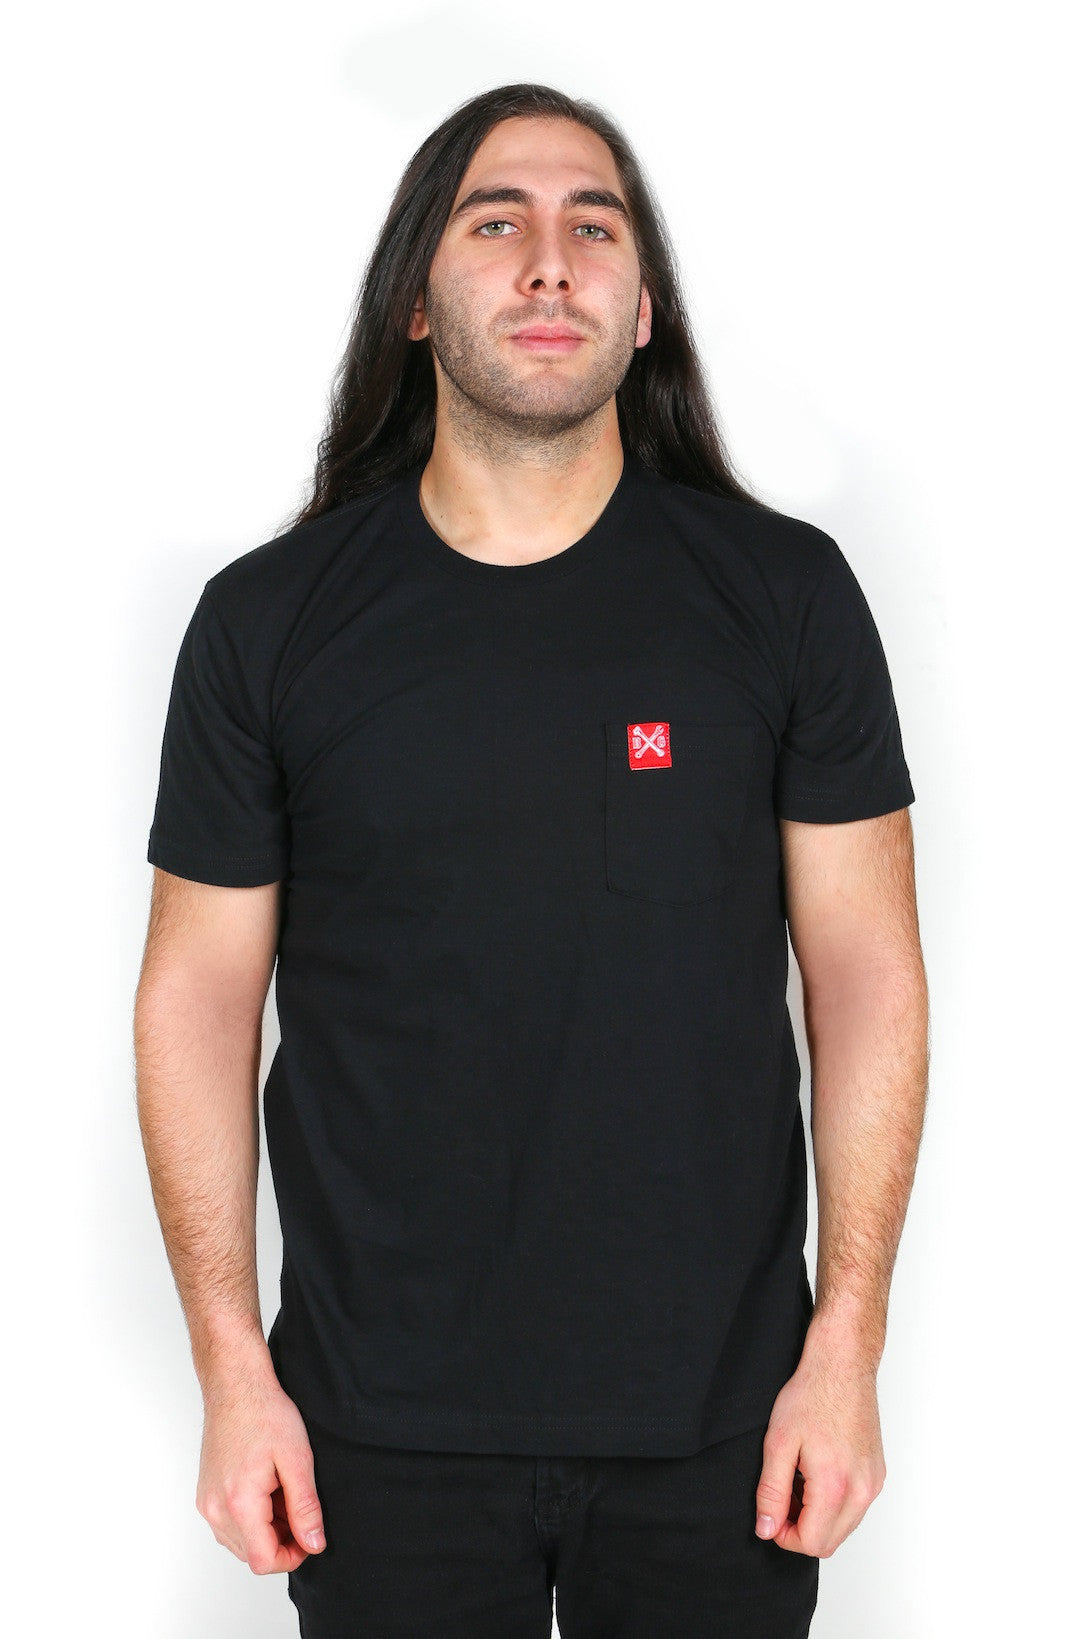 B&G Bones Pocket-T (Fine Jersey: Black)